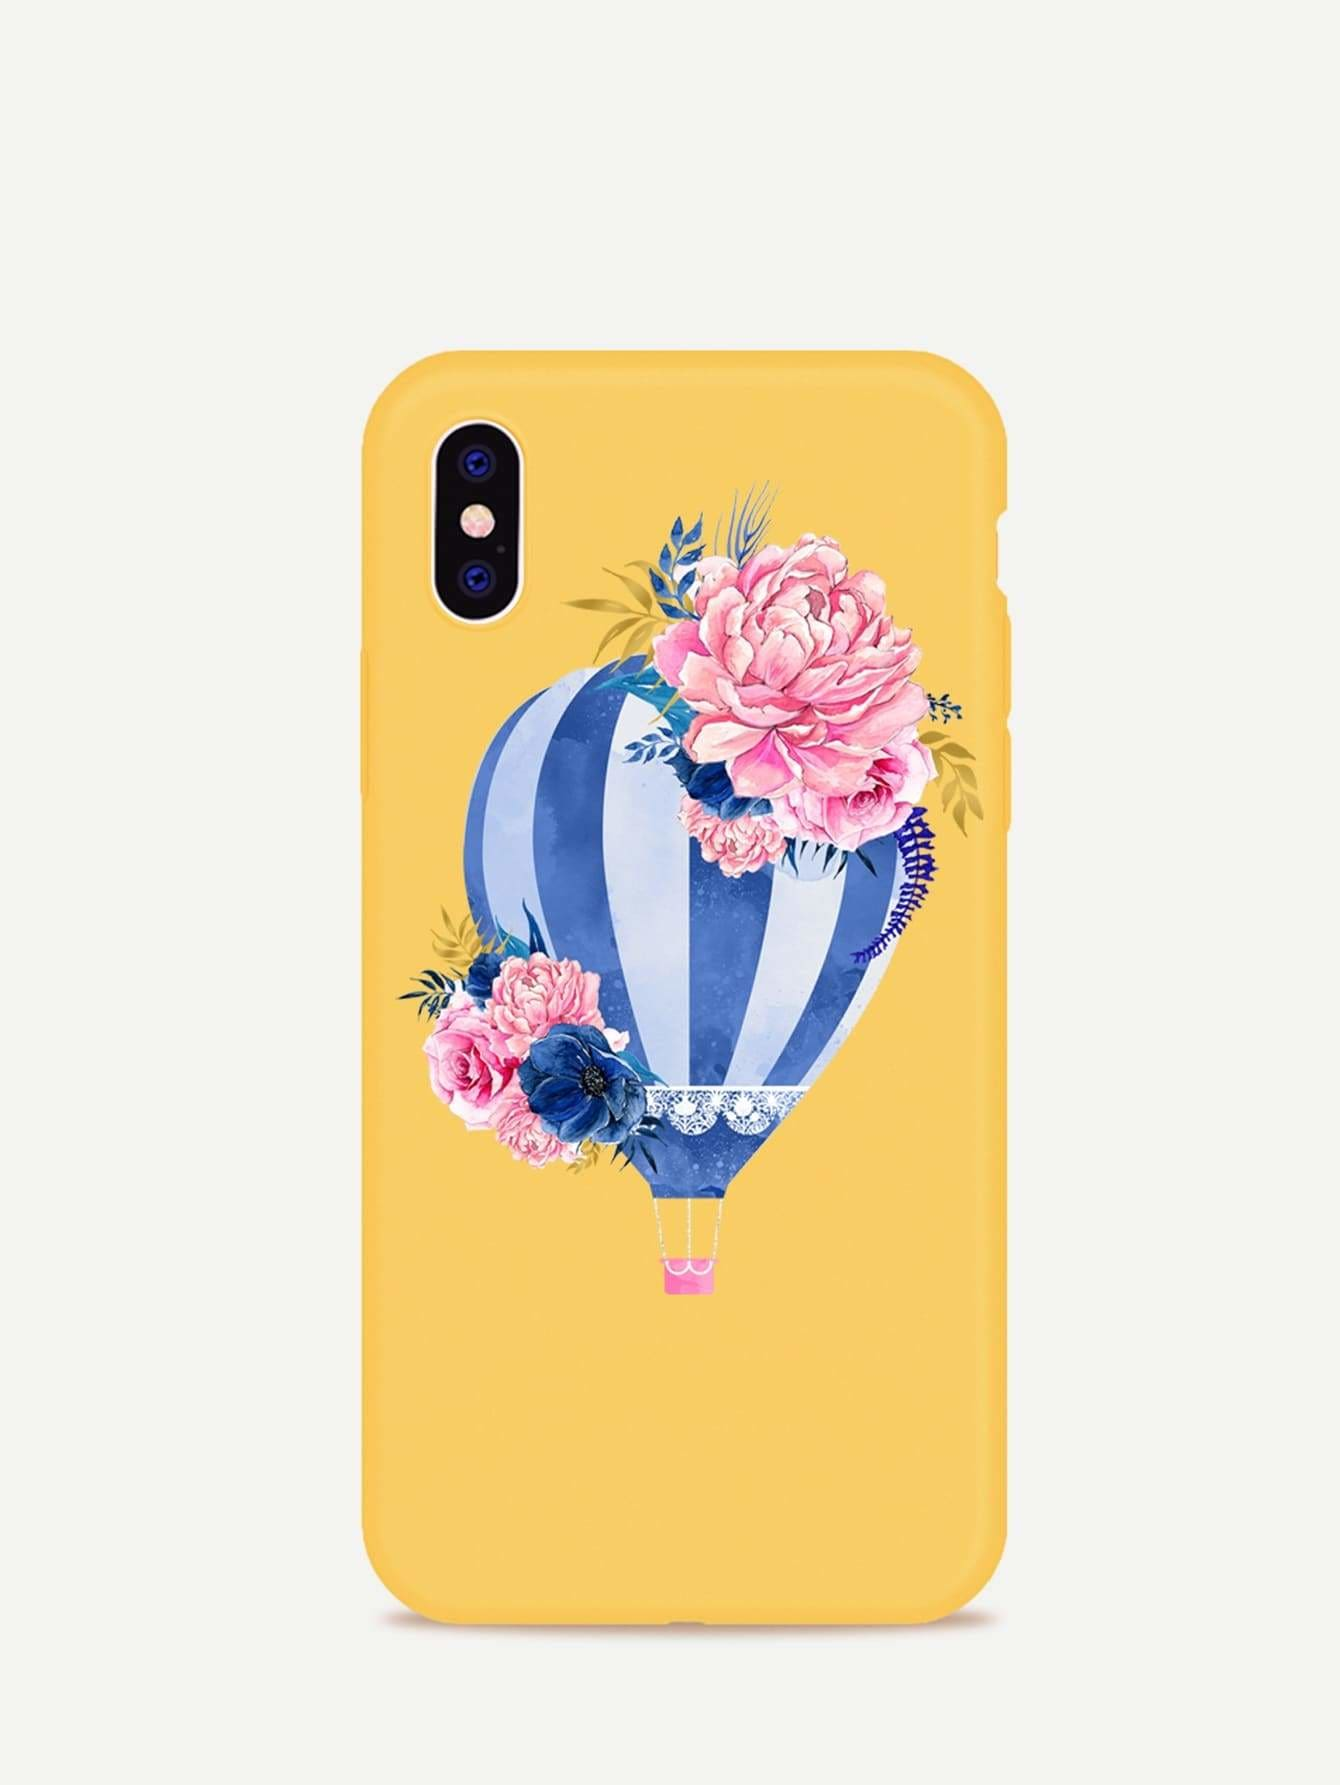 e77ca05960 Fire Balloon Pattern Iphone Case - Phone Cases